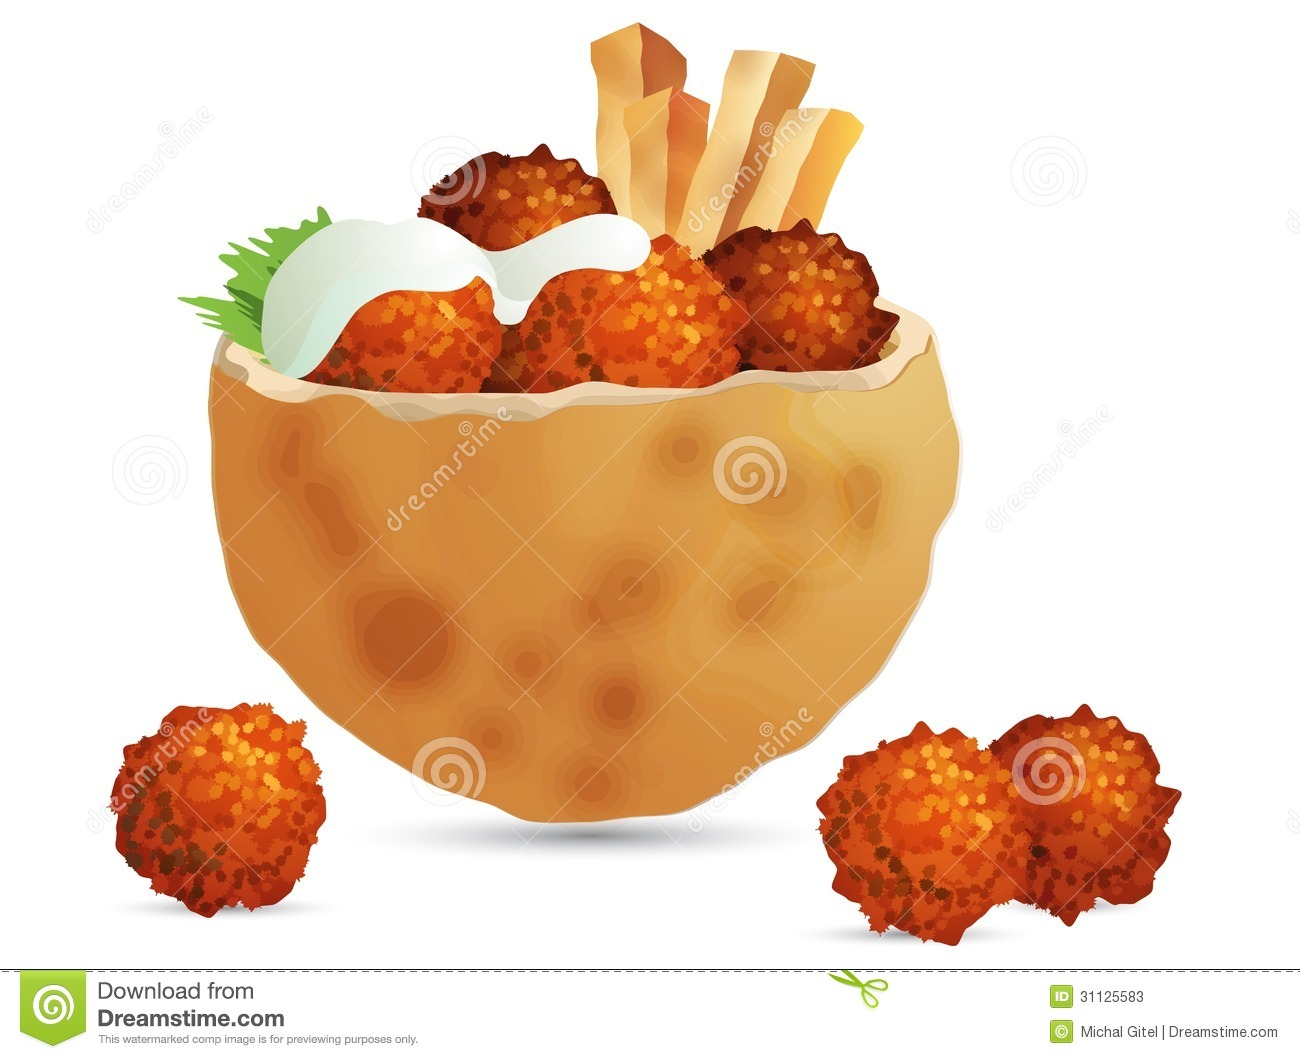 ... deep-fried falafel ball, in pita bread, with french fries, on white French Menu Clipart